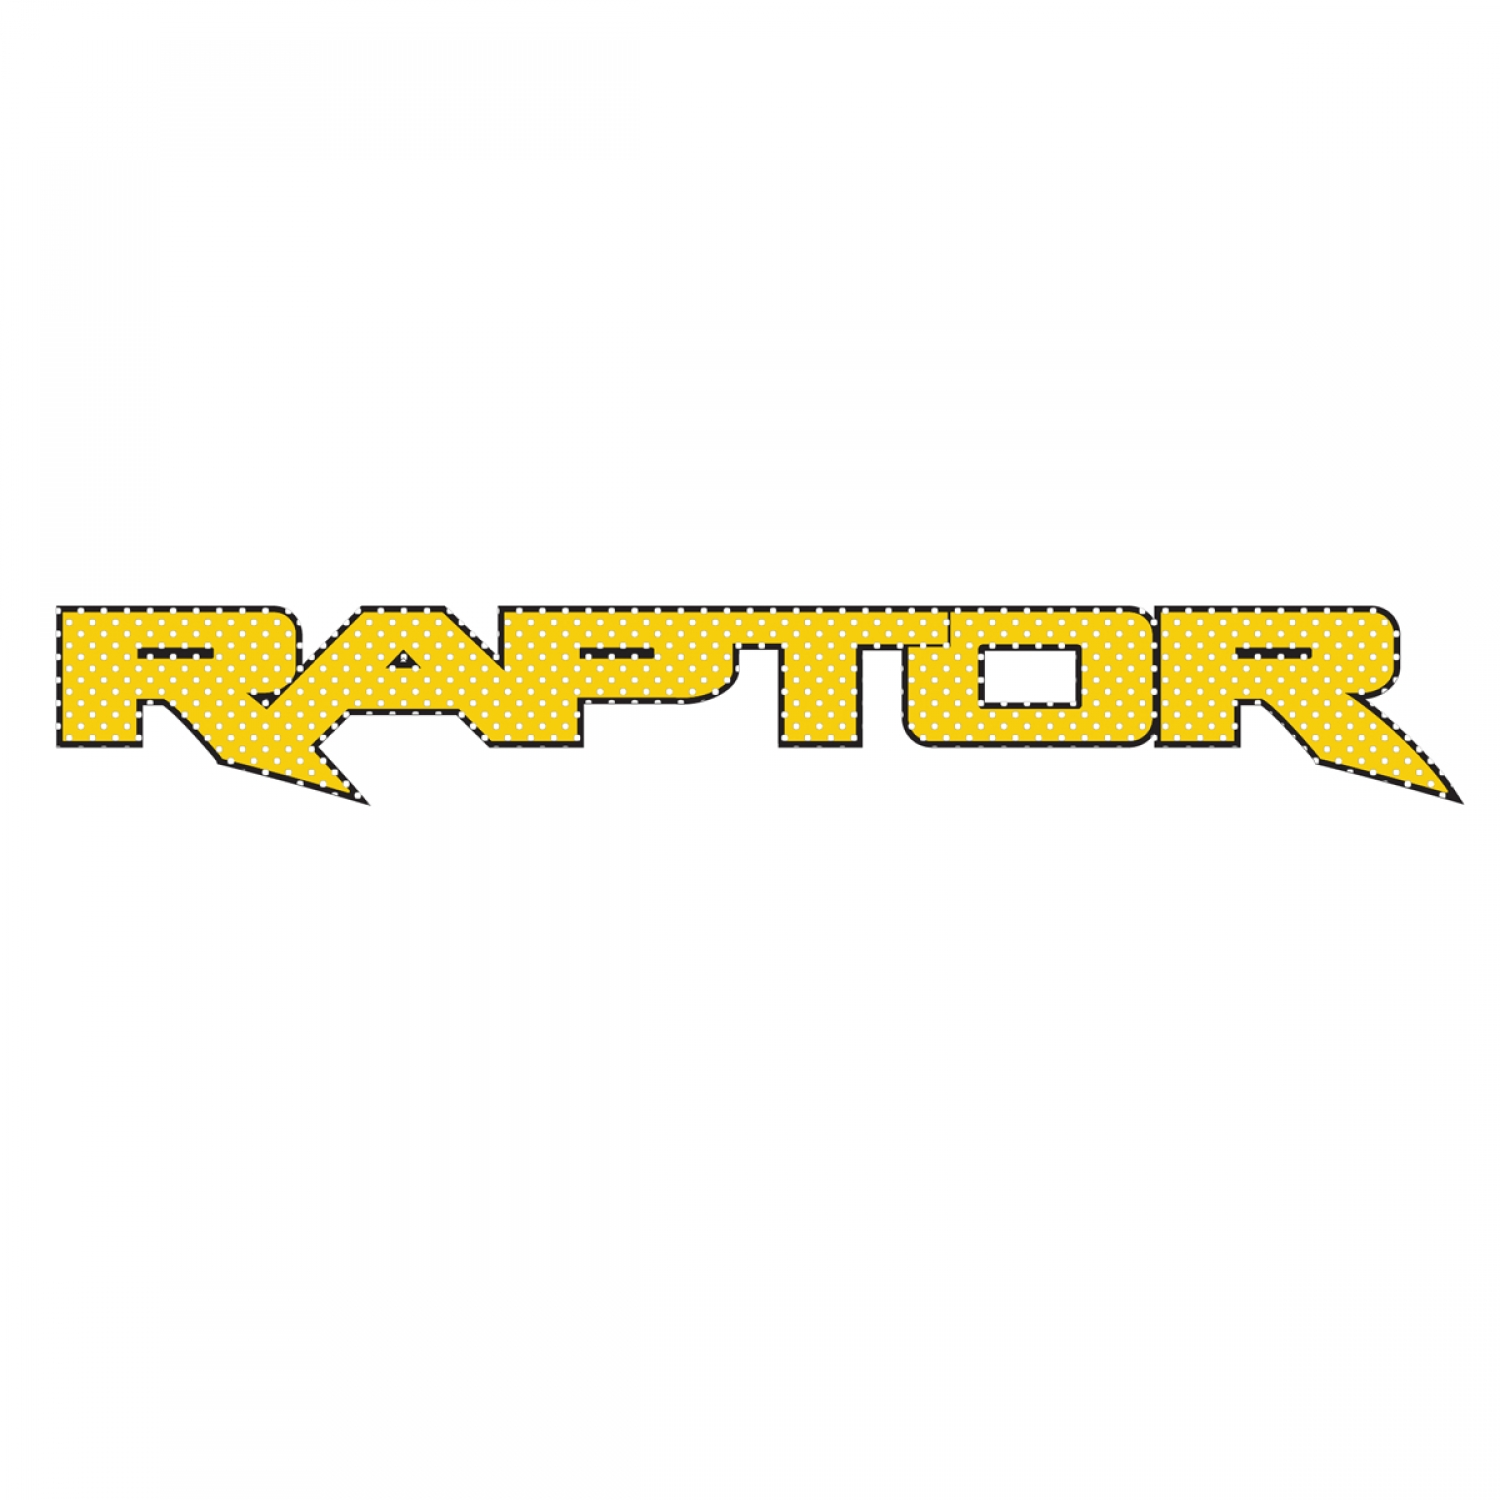 "Ford F150 Raptor 2017 up in Yellow 12"" 3M Perforated Unobstructed View Window Graphic Decorative Decal"